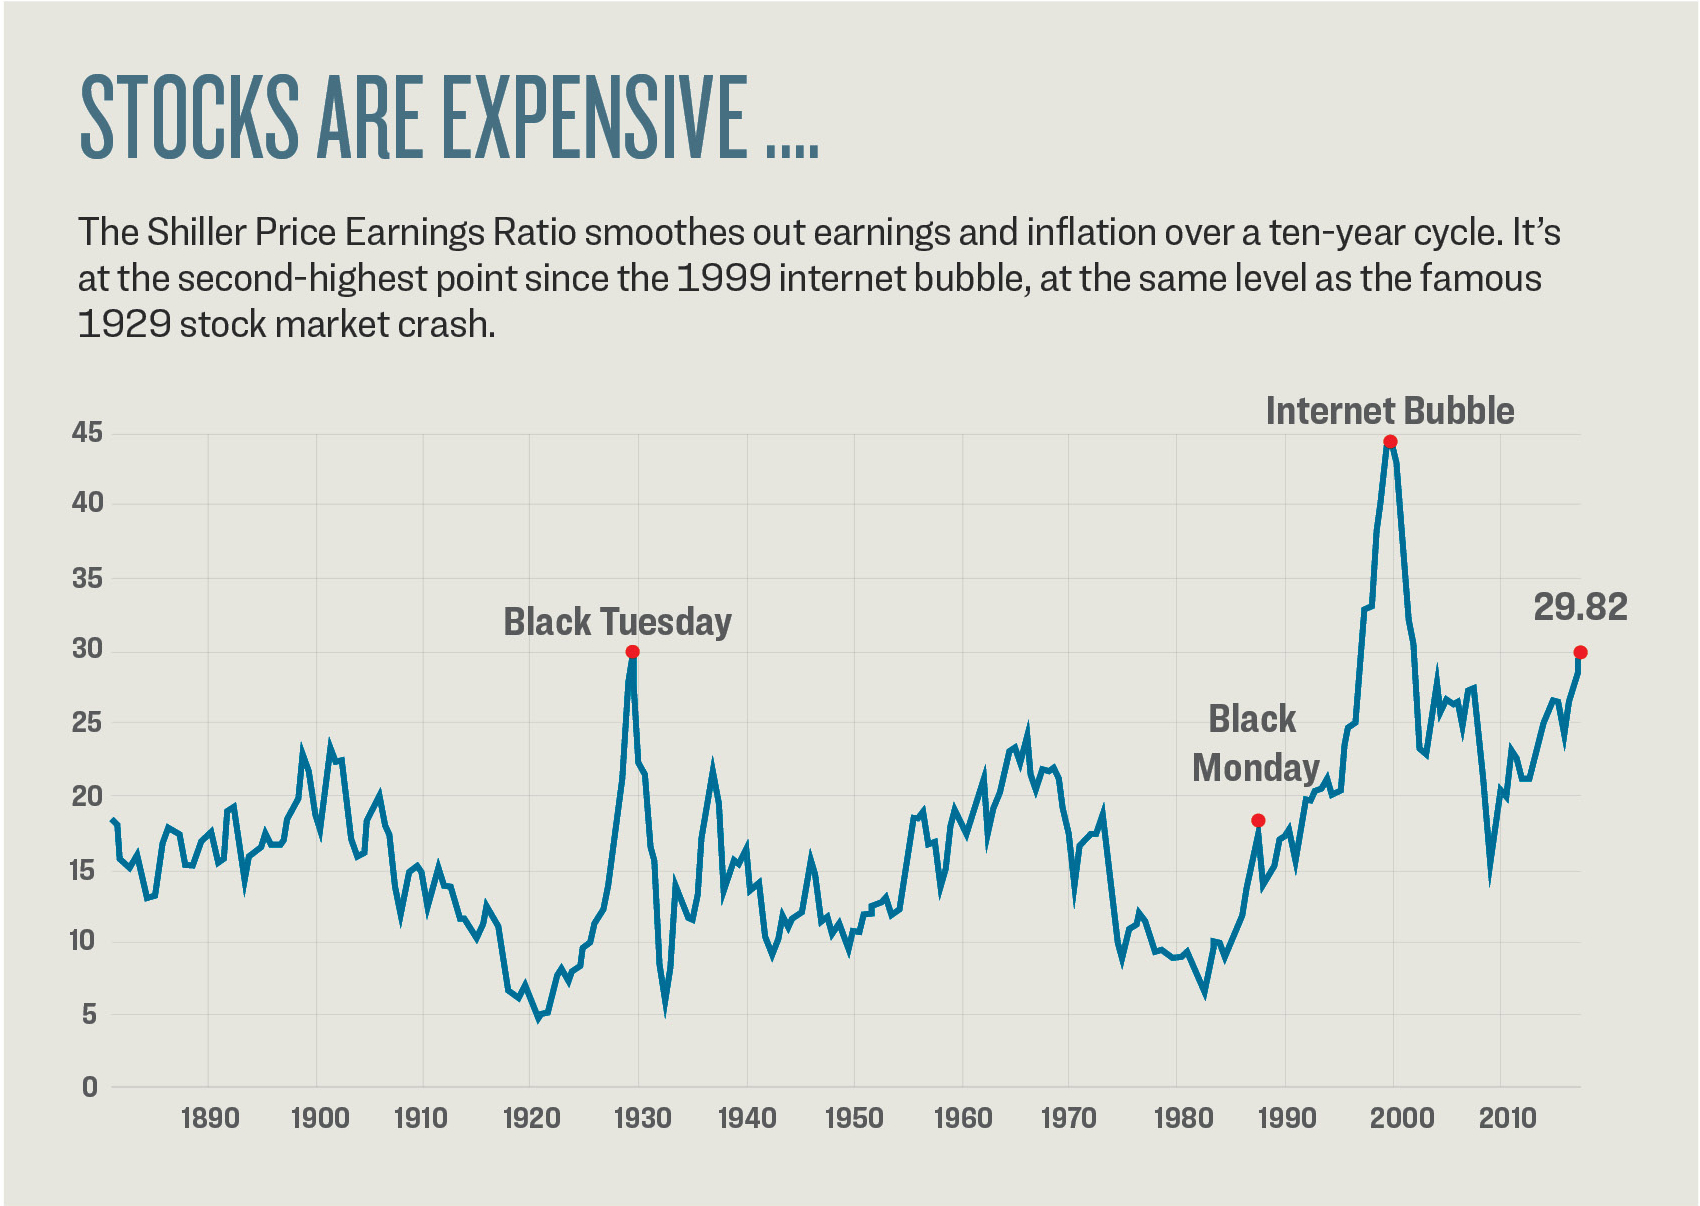 Economist Robert Shiller developed this valuation indicator from the classic price-toearnings ratio. Taking average earnings over 10 years and adjusting them for inflation takes out short-term fluctuations, giving a reliable measure of when stocks are historically cheap or expensive.